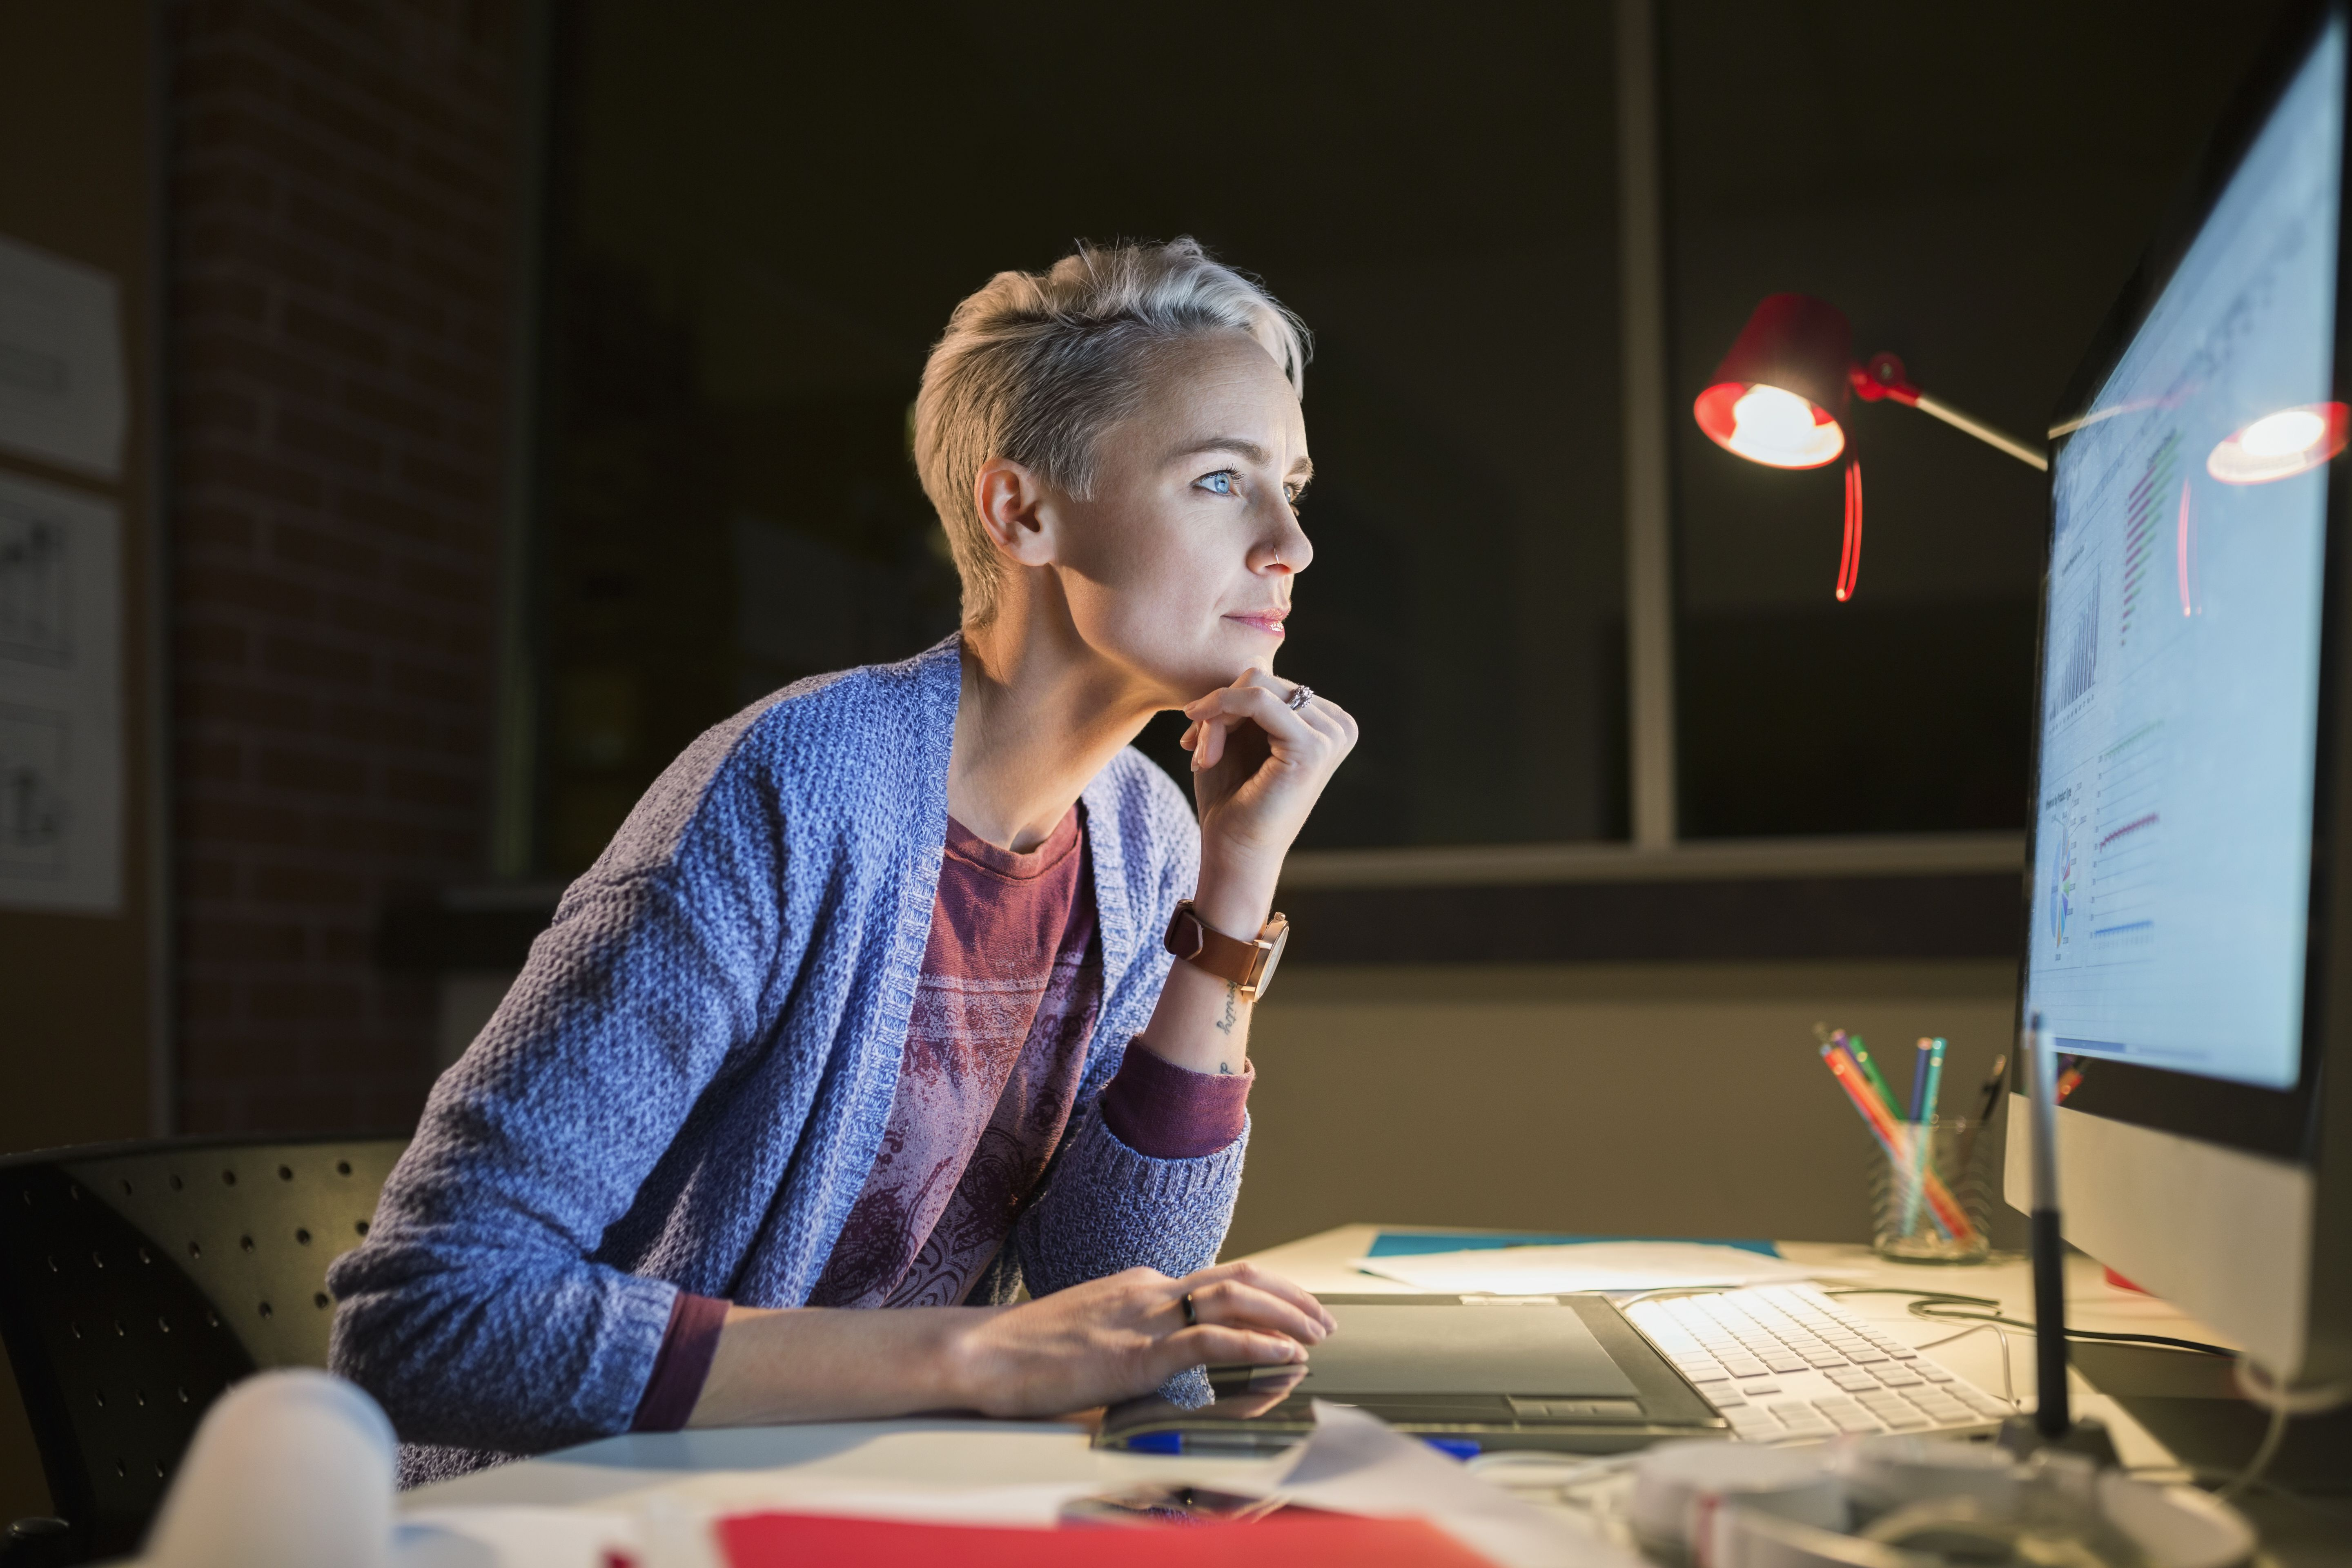 Woman using computer in office at night